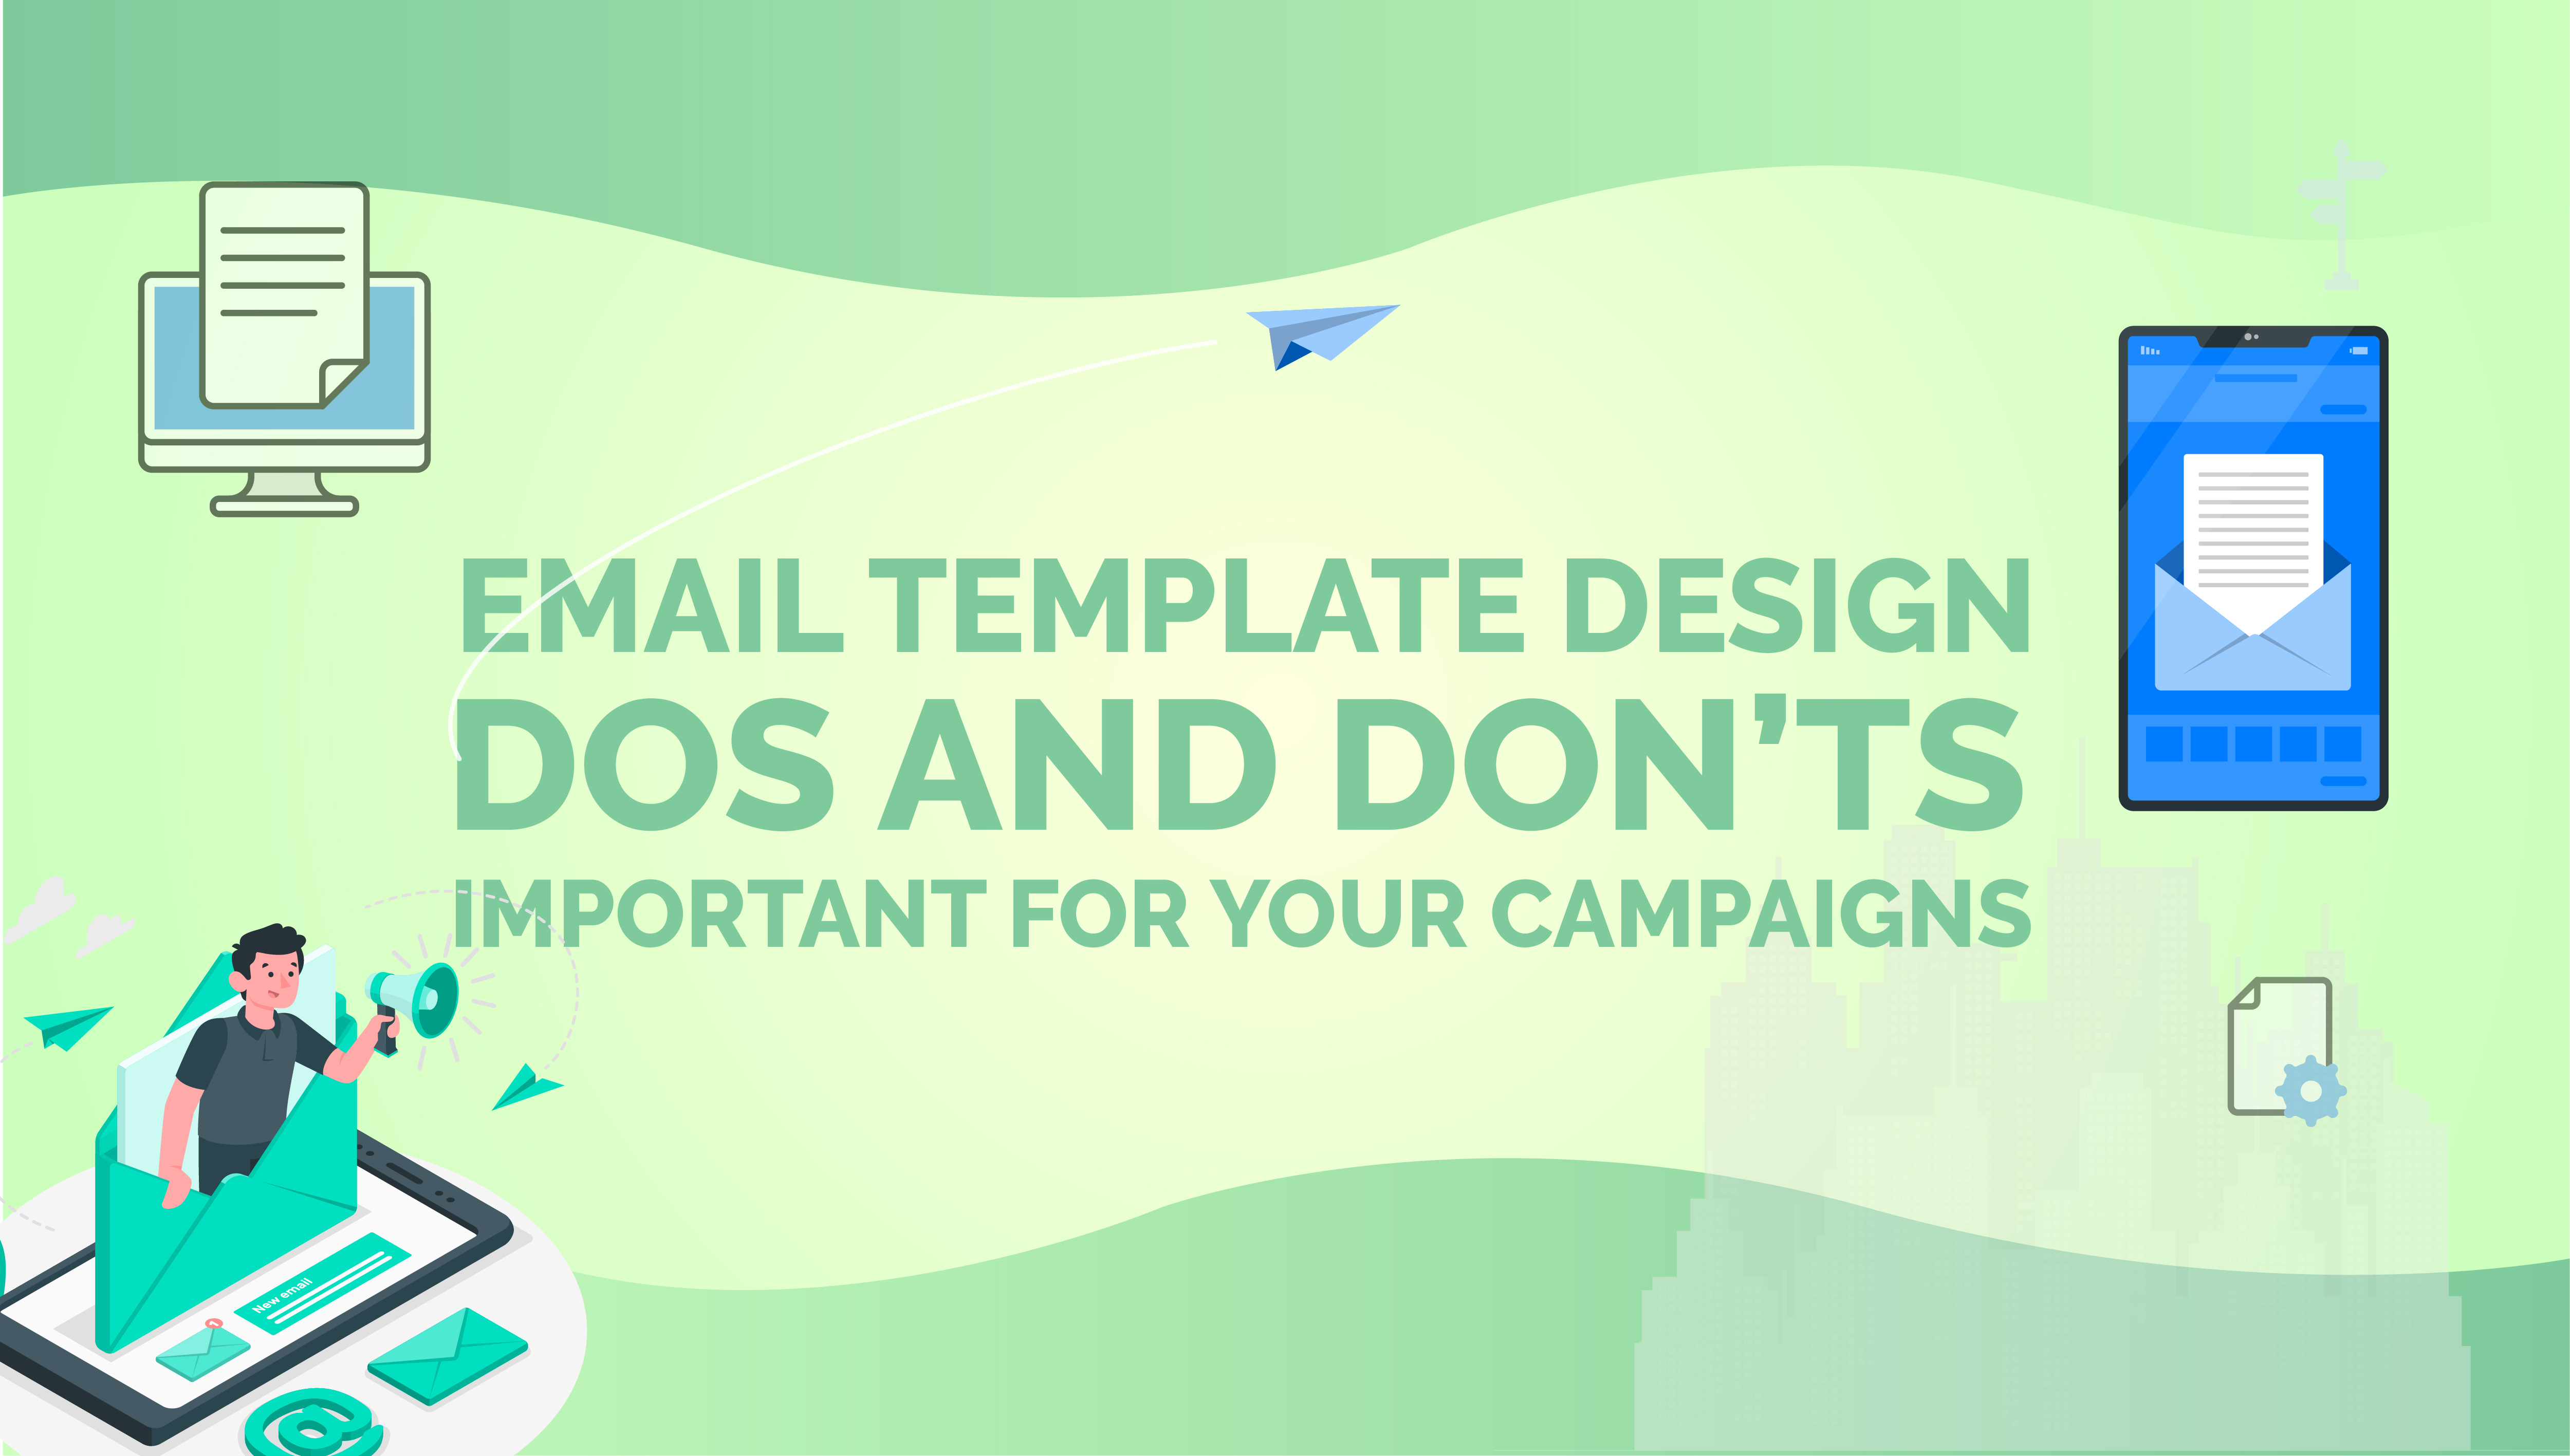 Email Template Design Dos and Don'ts Important for Your Campaigns